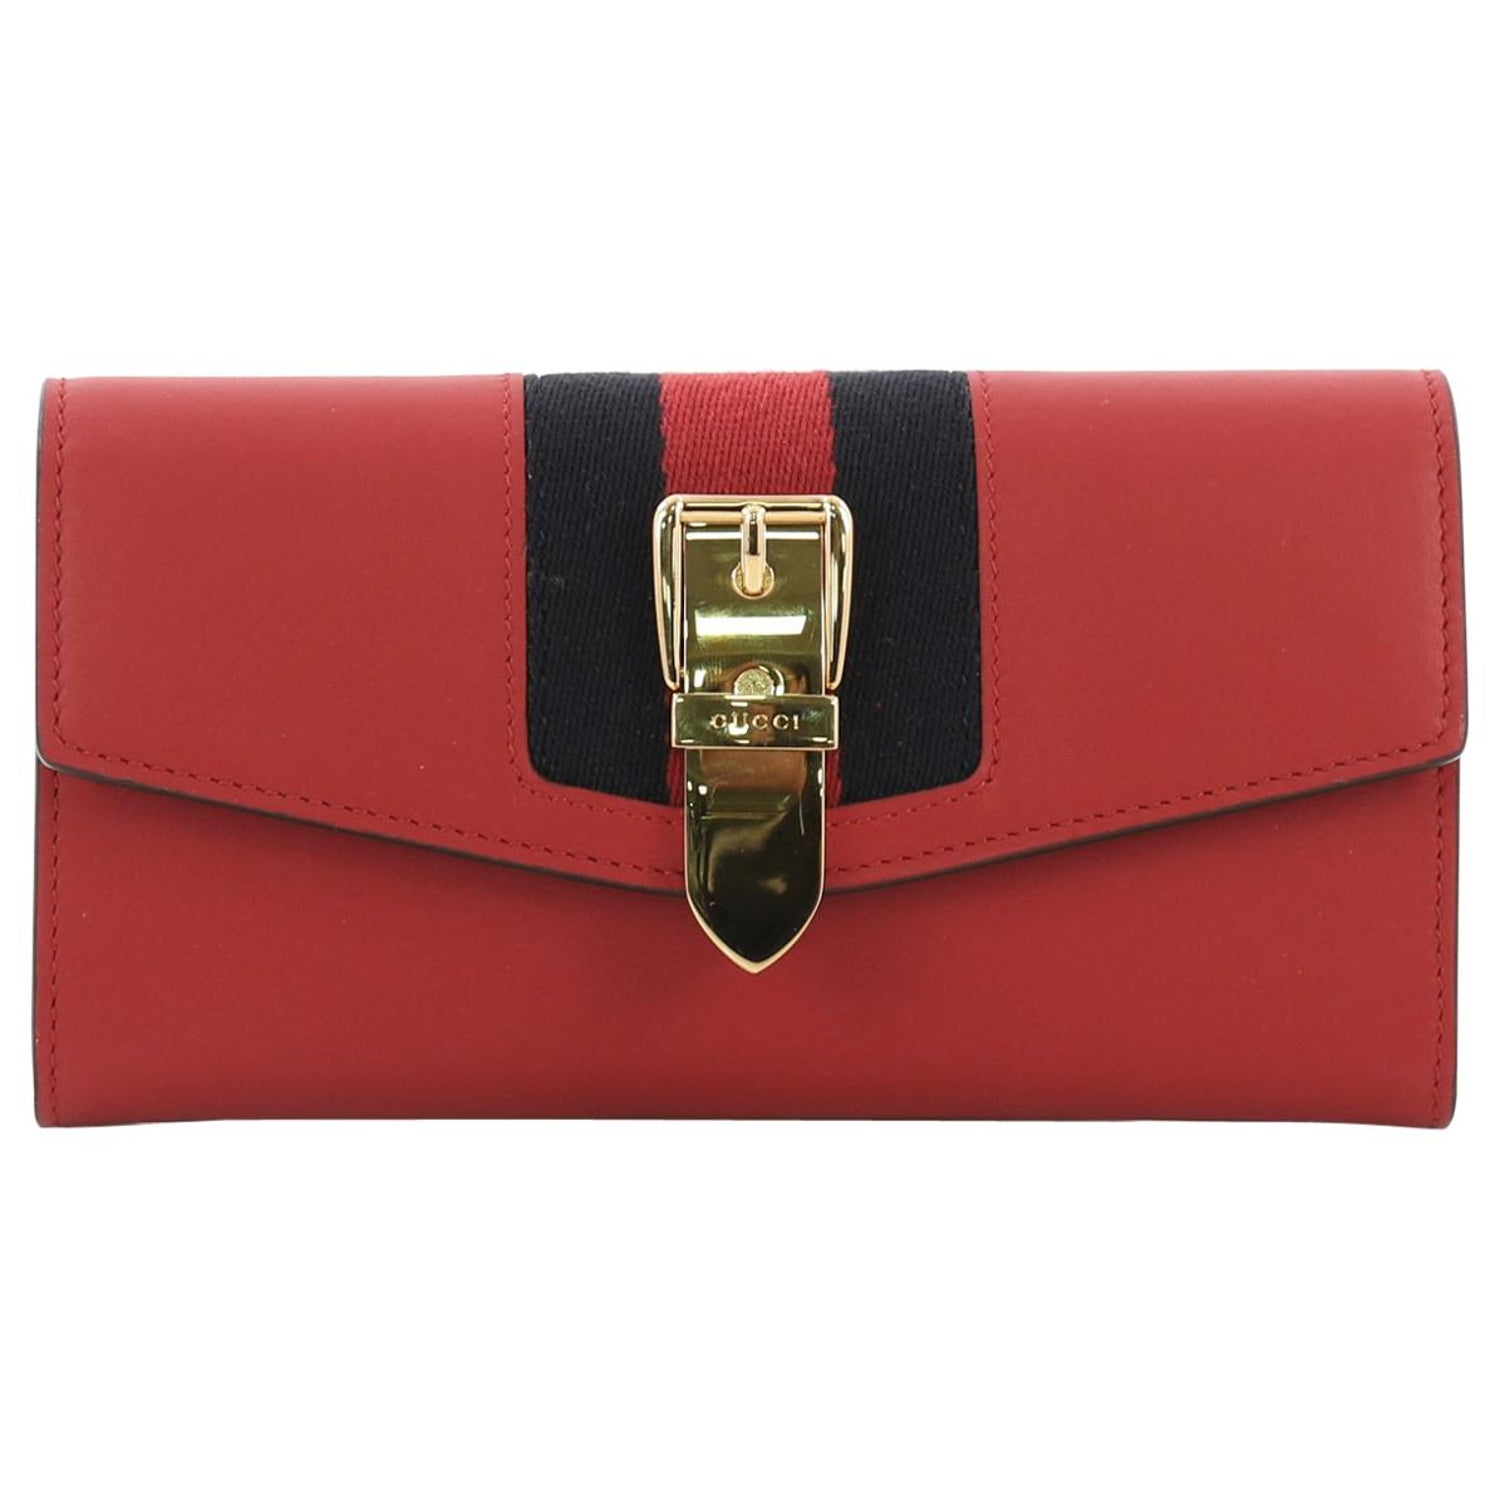 71dbf387865f3a Gucci Sylvie Continental Wallet Leather at 1stdibs